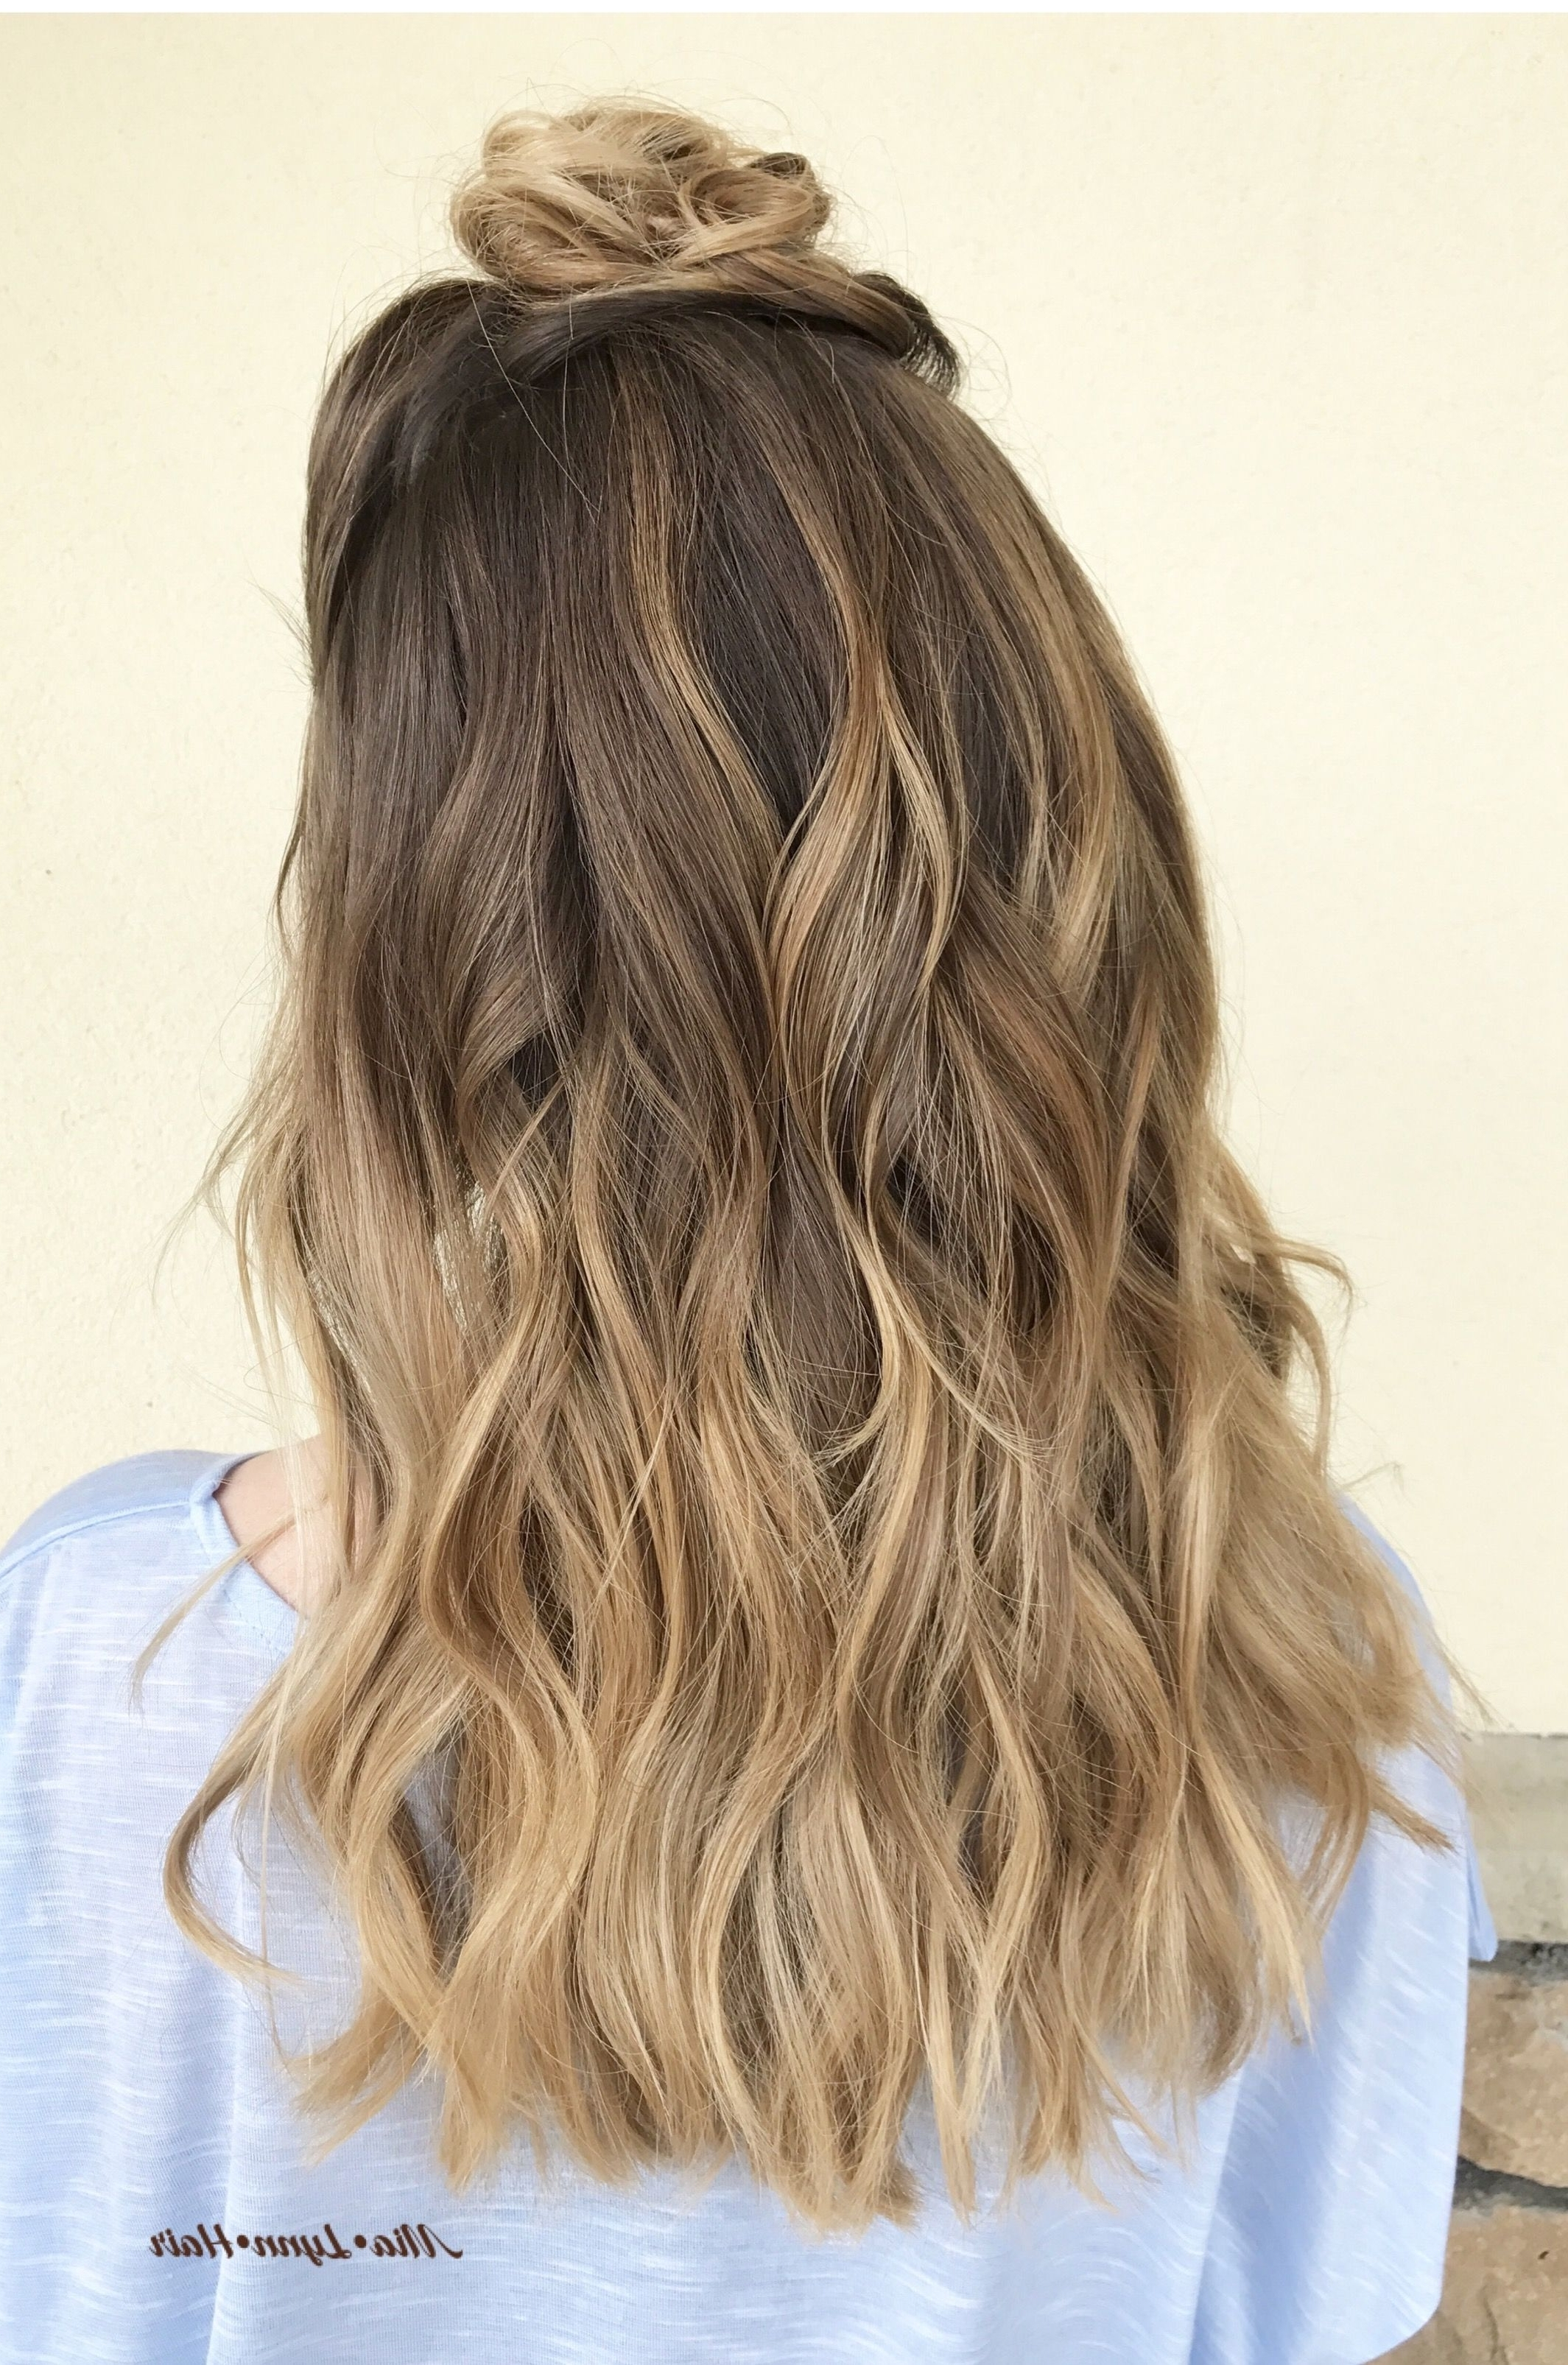 2017 Beachy Waves Hairstyles With Blonde Highlights With Balayage, Balayage Highlights, Painted Highlights, Blonde Hair (View 1 of 20)